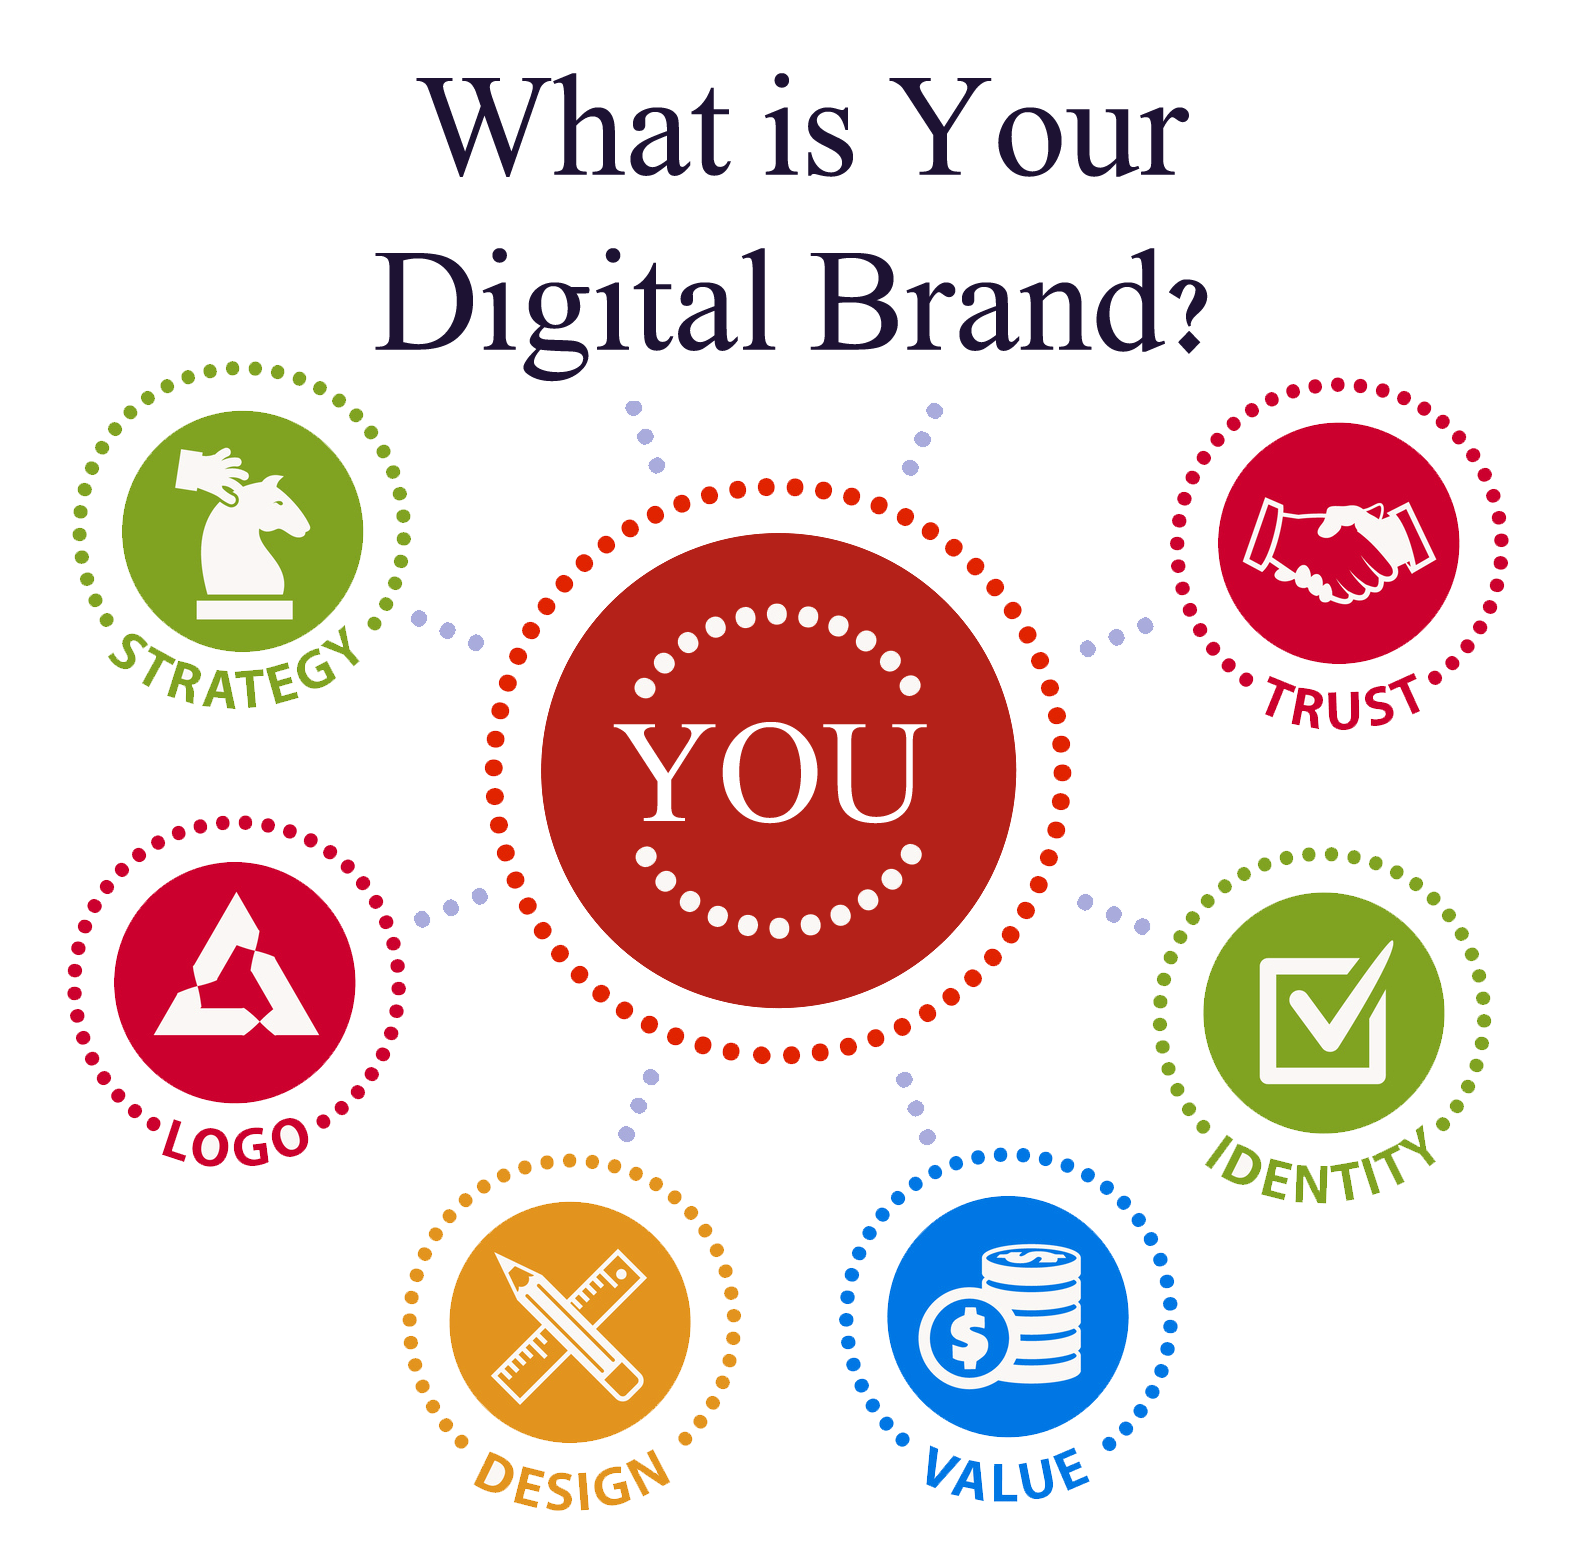 Making Your Brand Stand Out in a Tough Market